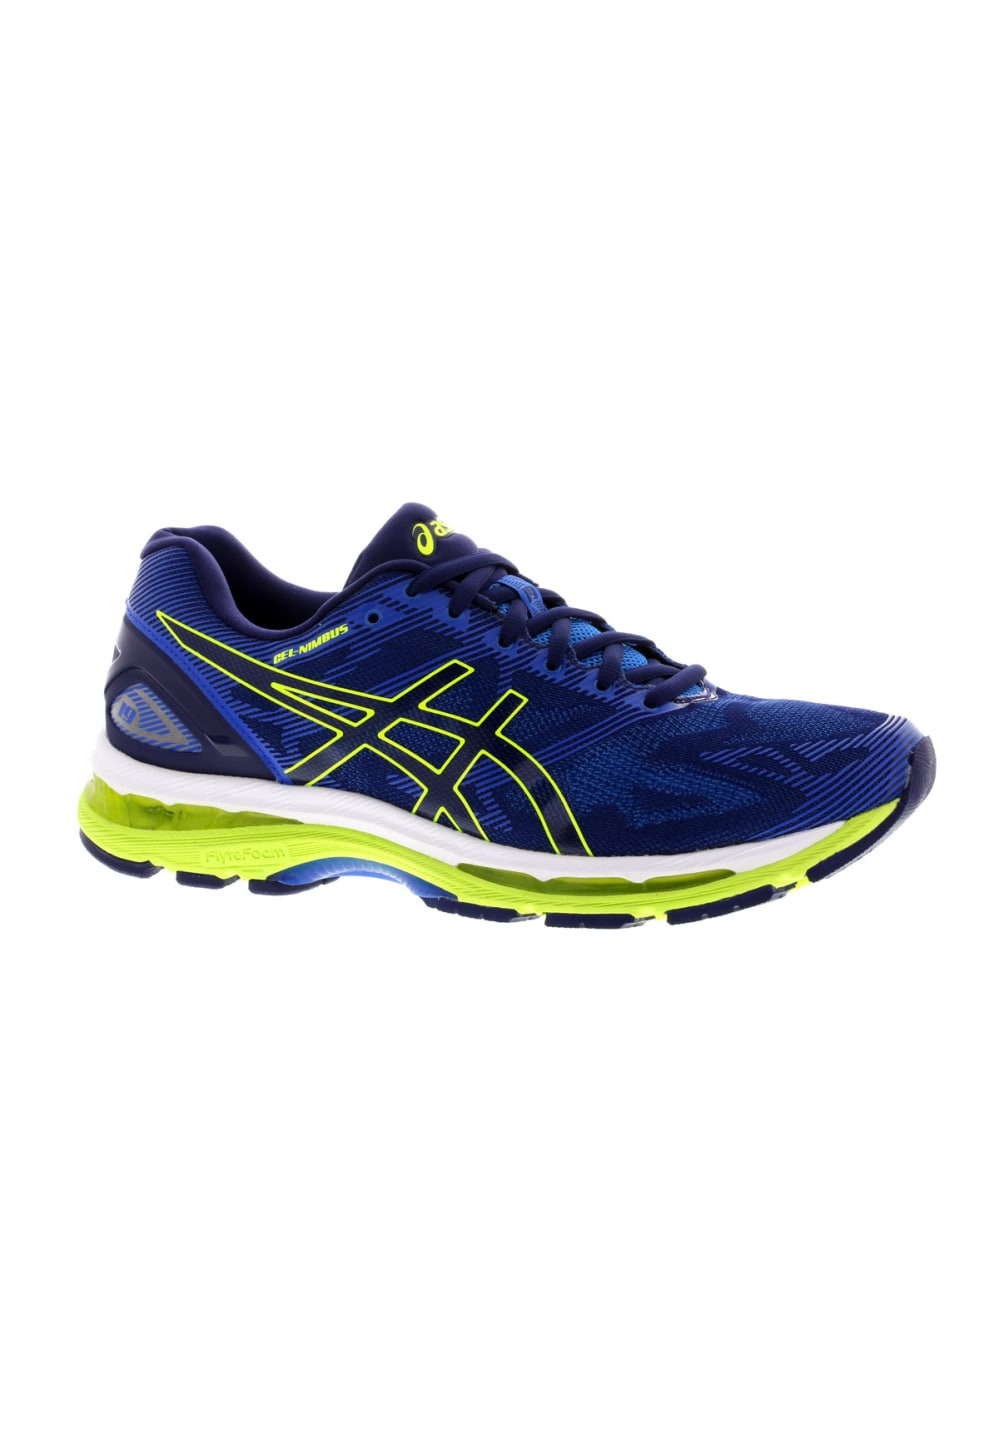 buy online 0dd2f 9092e ASICS GEL-Nimbus 19 - Running shoes for Men - Blue